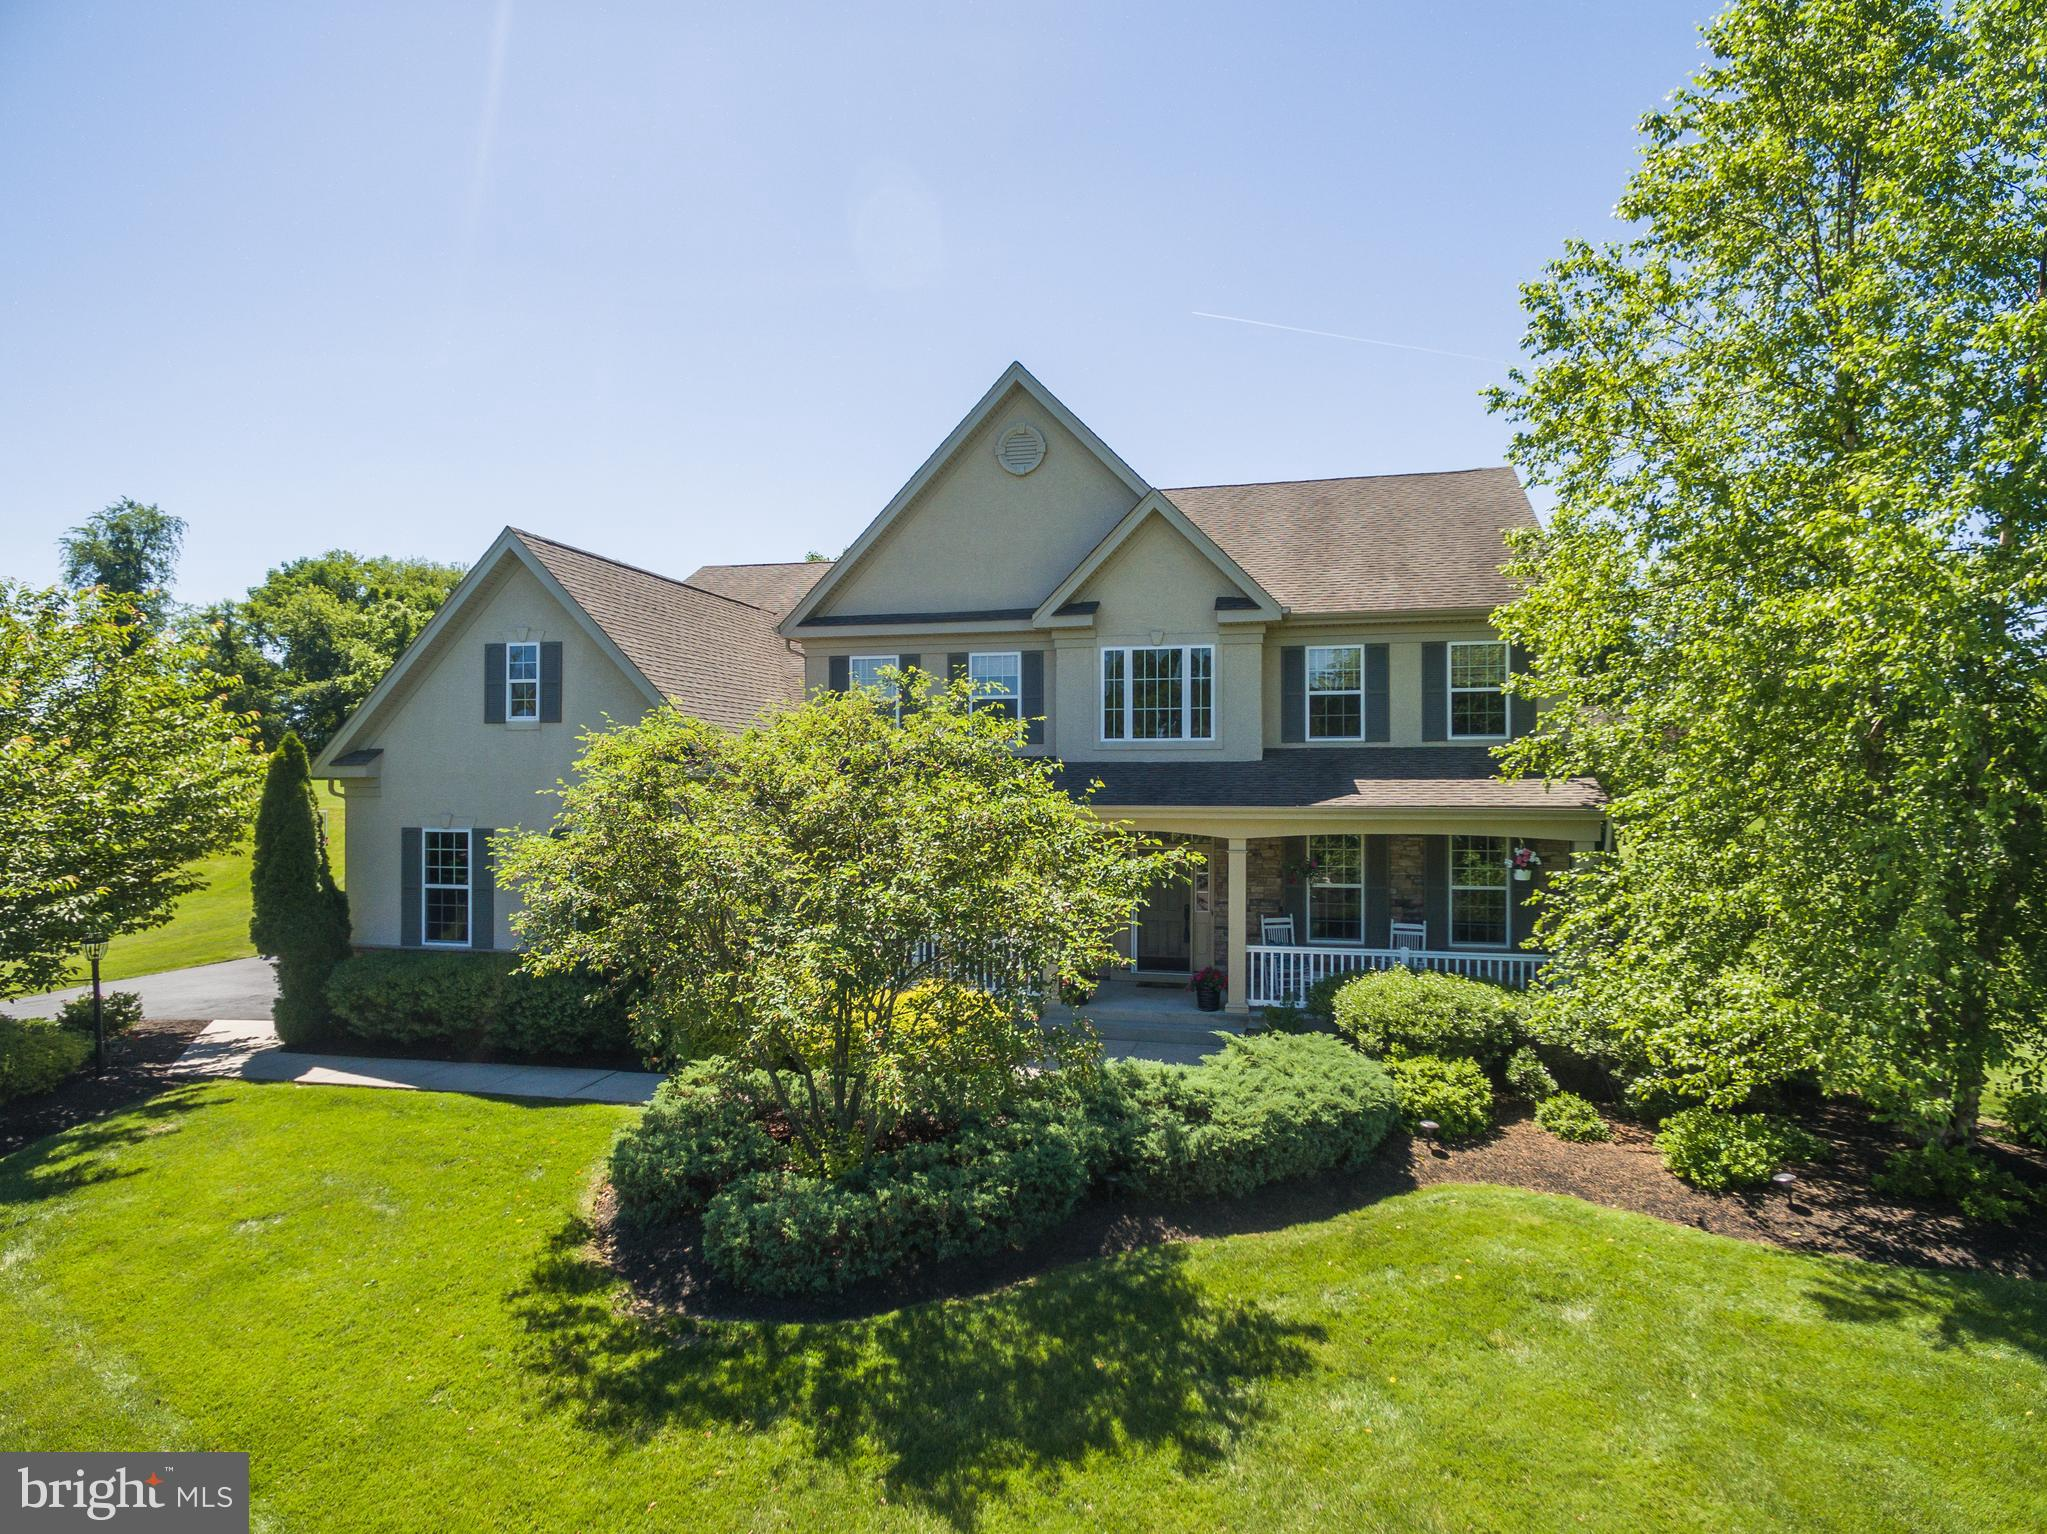 1680 DELAWARE RIM ROAD, YARDLEY, PA 19067